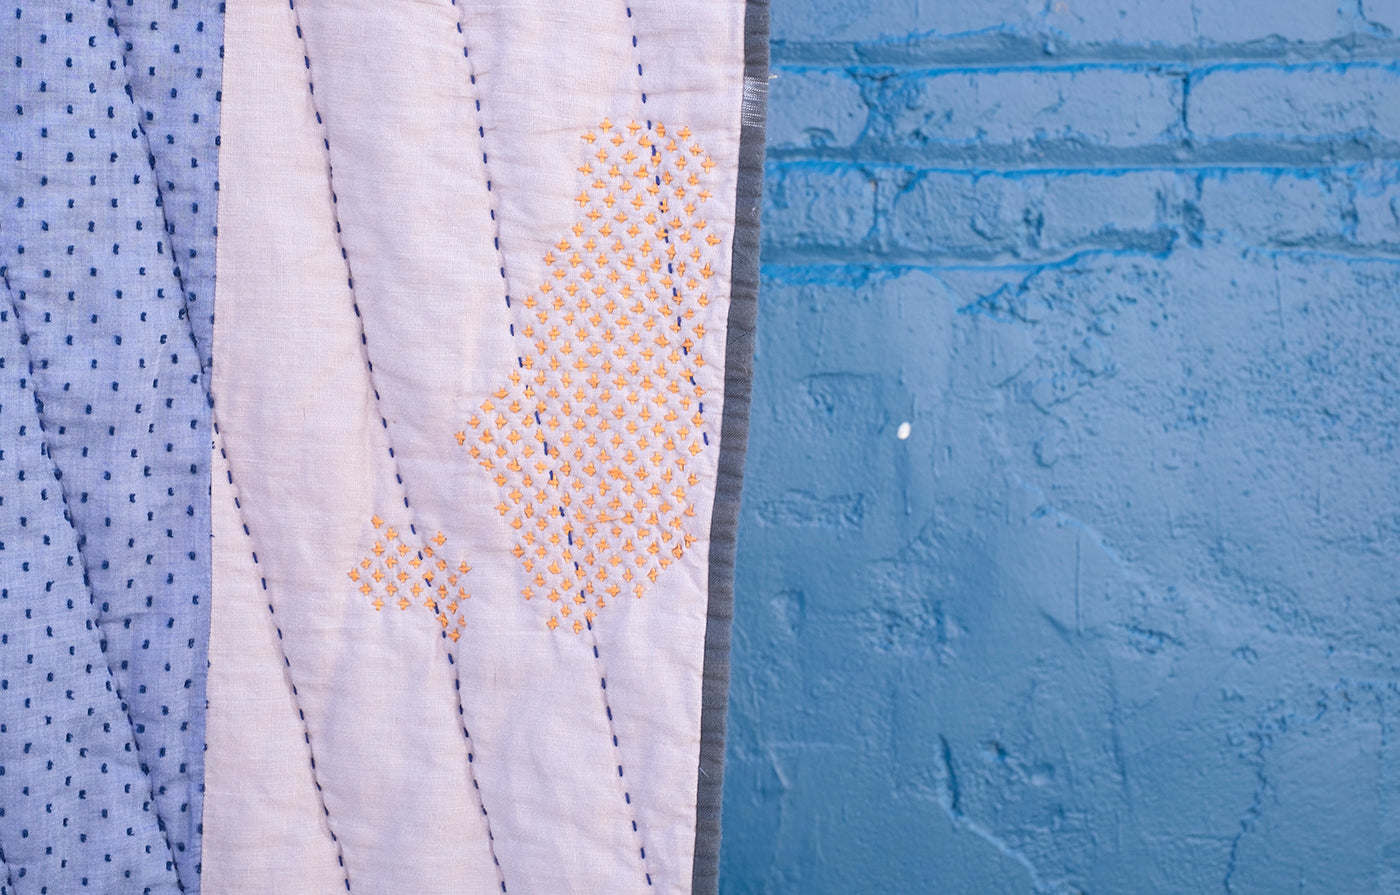 Photograph showing fuzzy dots on the chambray quilt, with random bits of sashiko embroidery accents to lend some tactile interest.  Photograph is up close showing the detail, with a blue background.  Quilt is blue and grey with orange accents of threading.